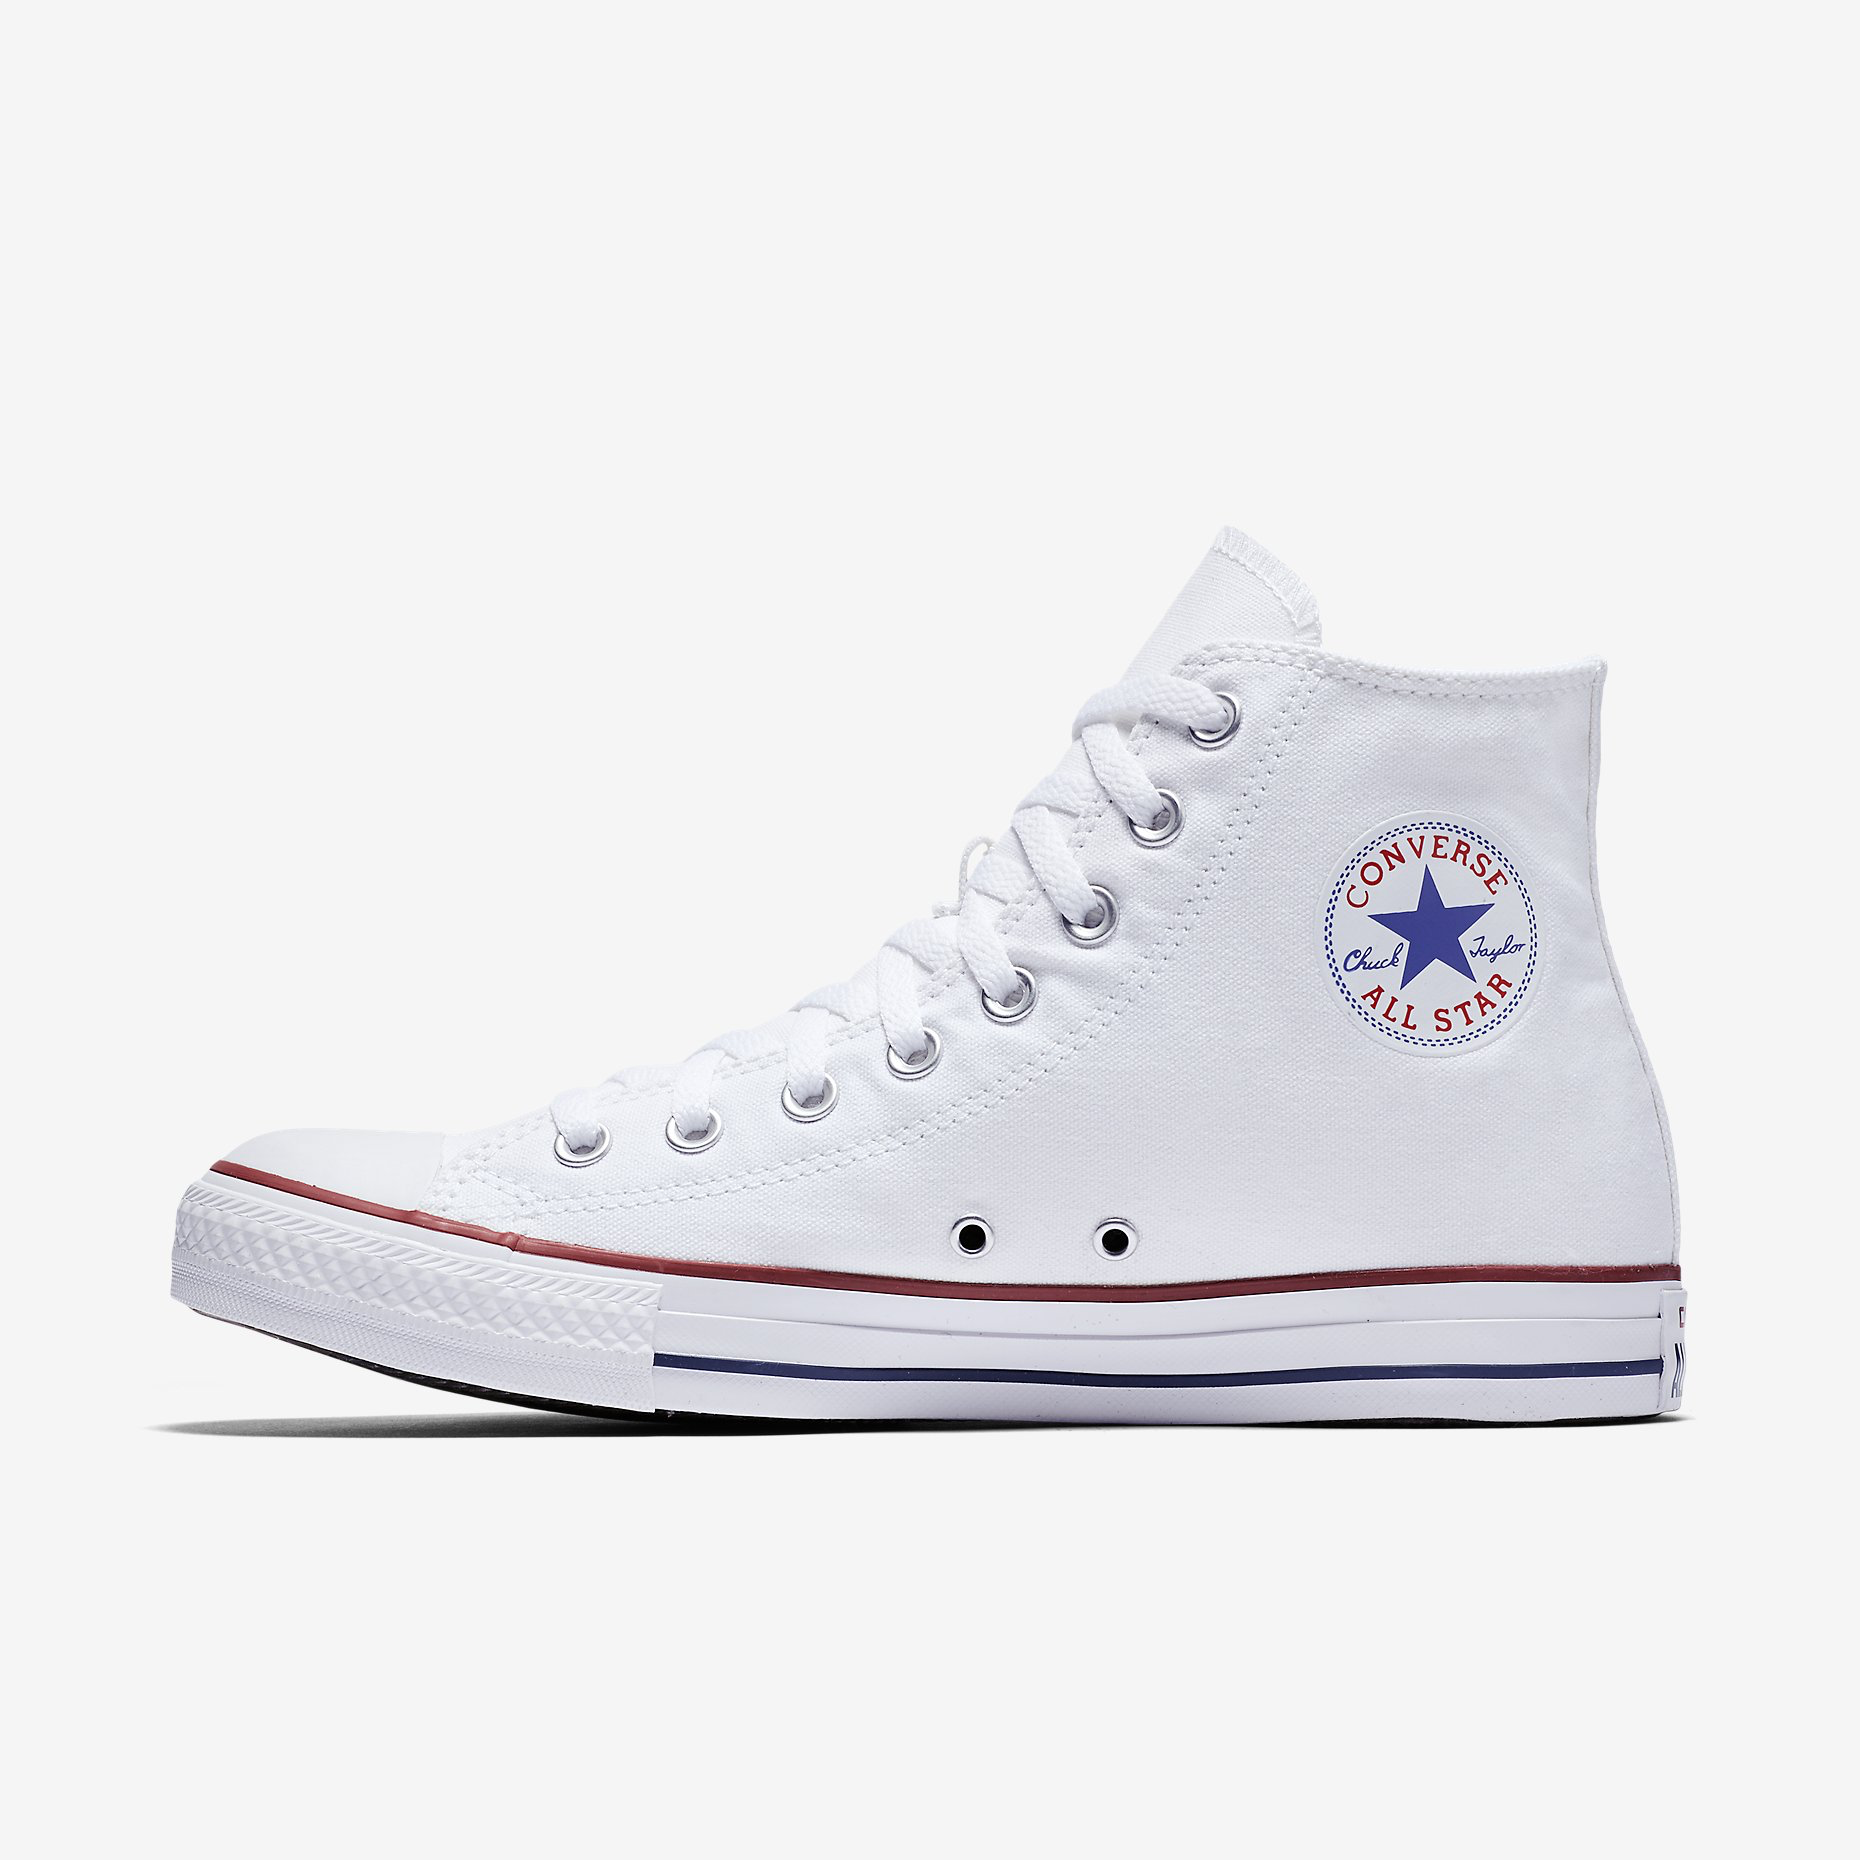 factory authentic get cheap quality design Converse Chuck Taylor All Star Infant/T High Top White